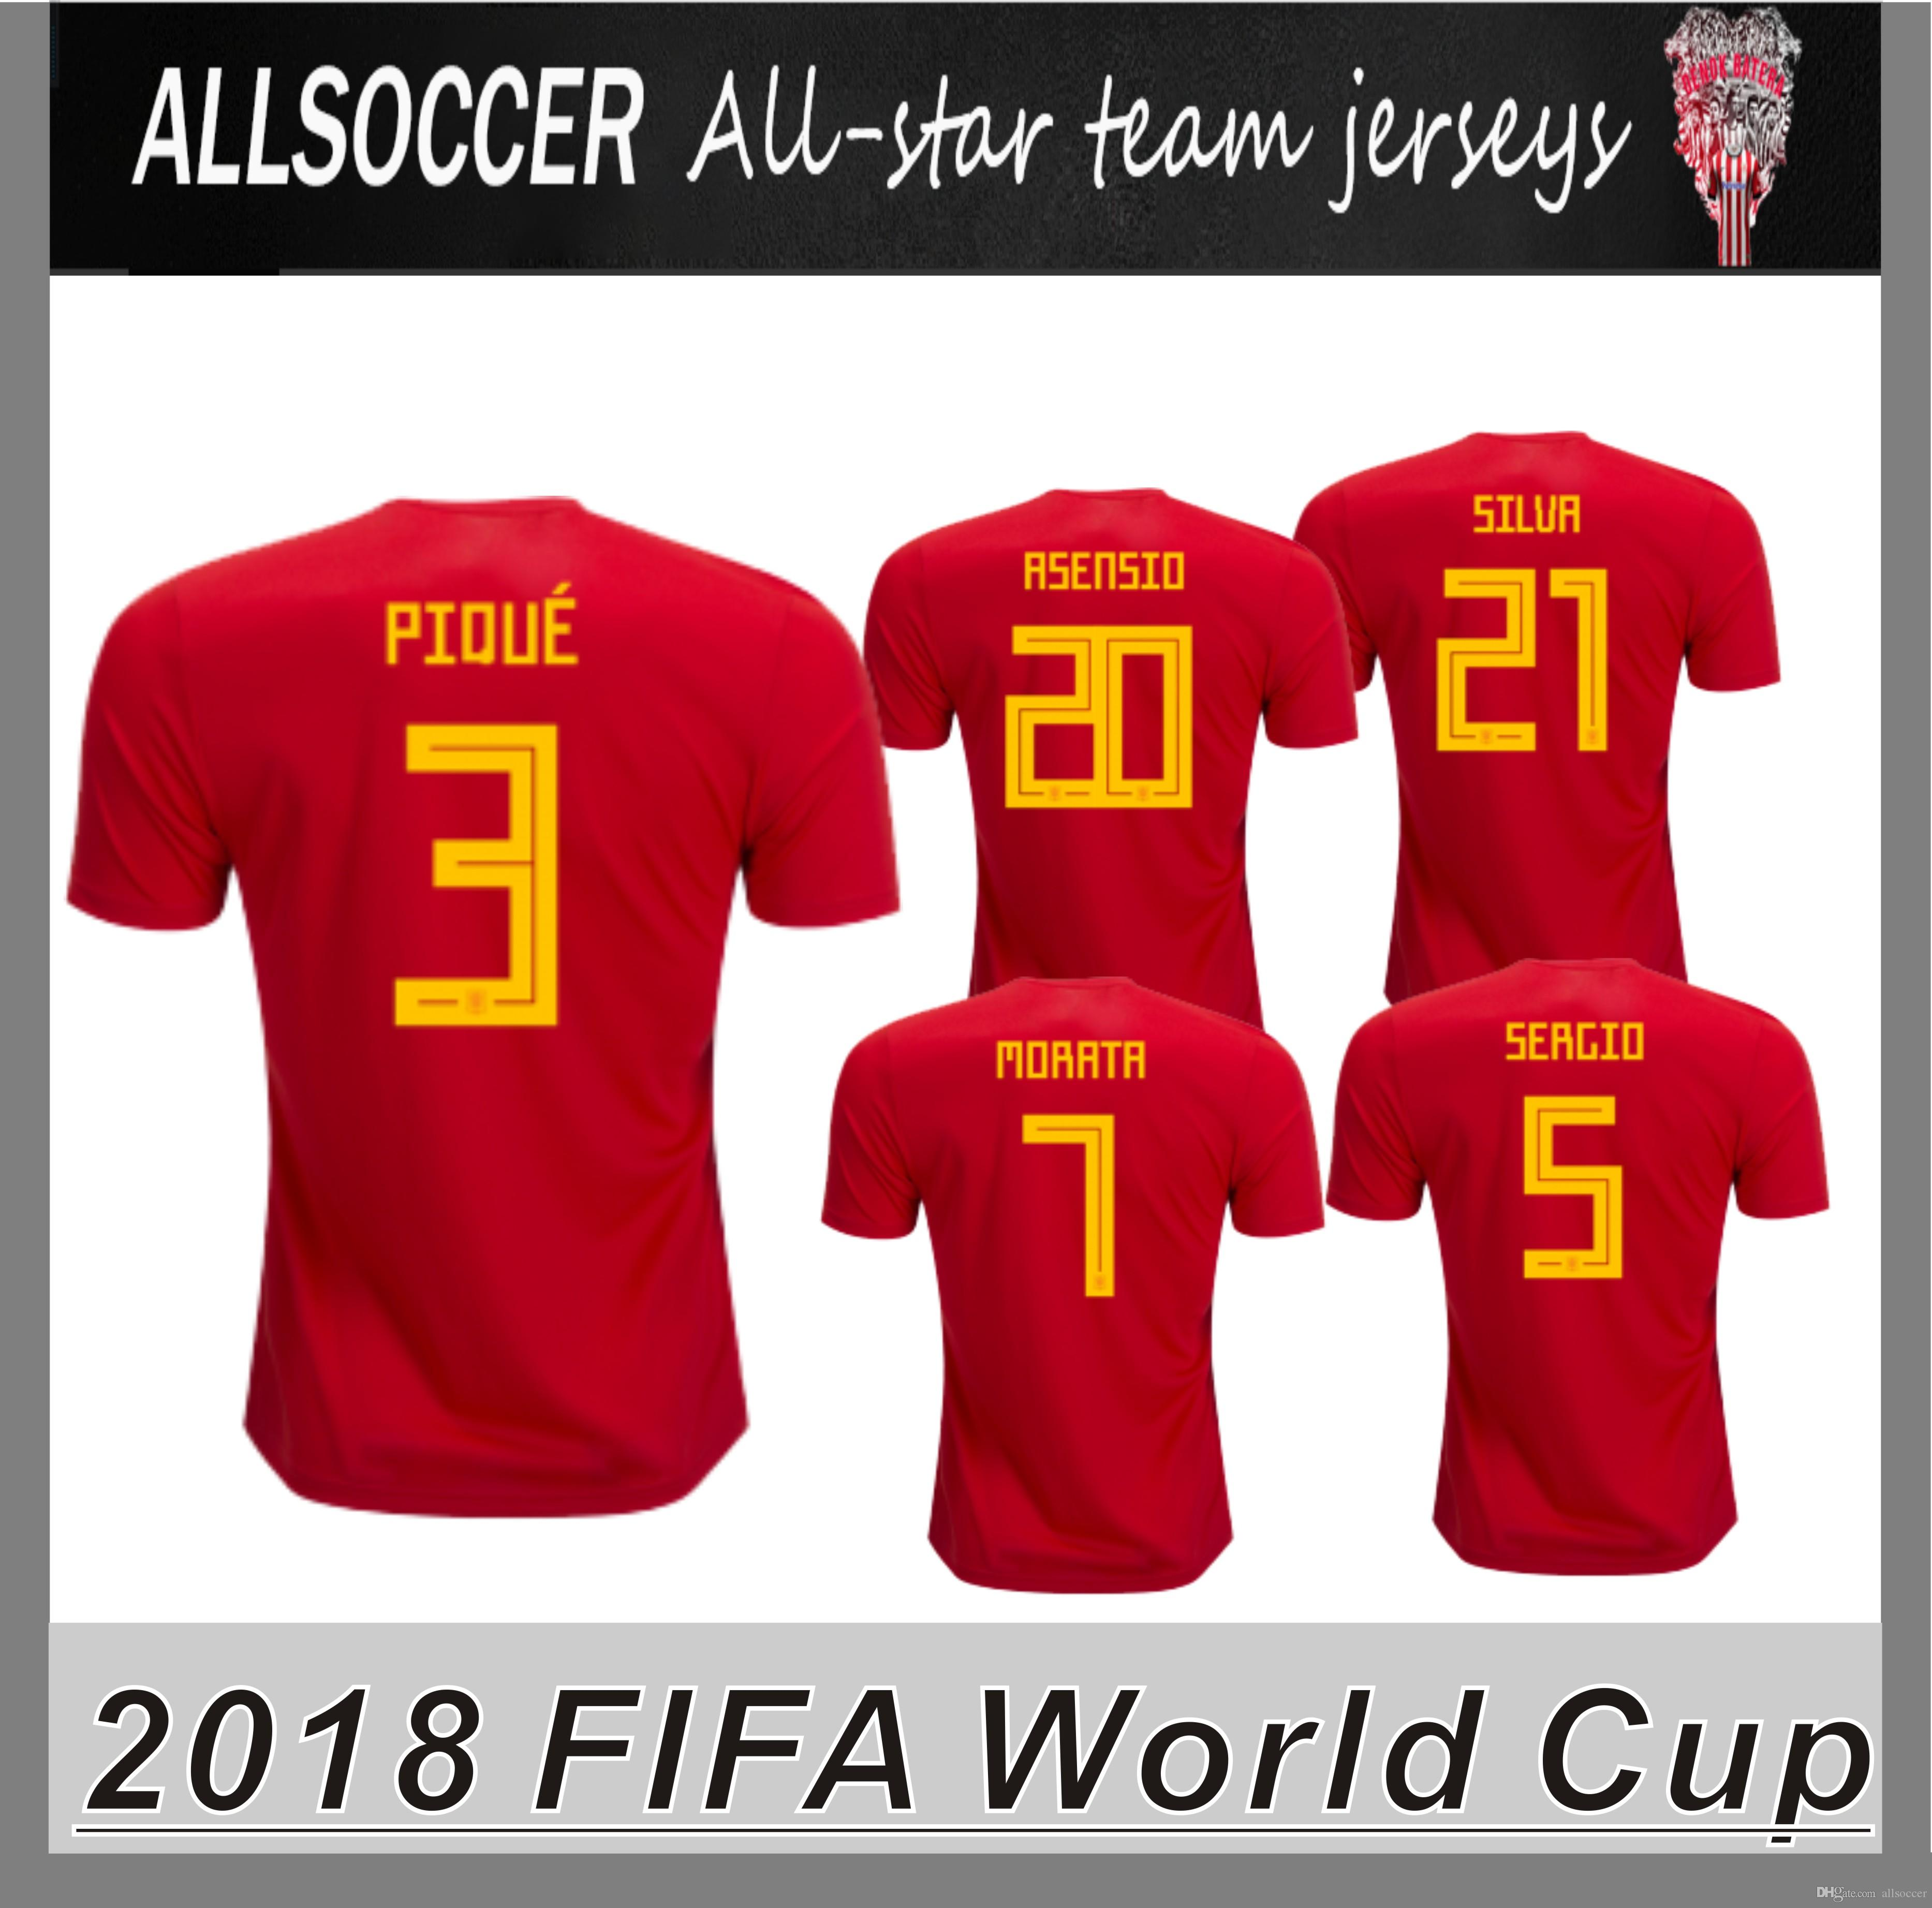 2019 2018 World Cup JERSEYS Spain Home Soccer Tshirts Marco Asensio Pique  ISCO Andres Iniesta Sergio Ramos Alvaro Morata Sergio Busquets From  Allsoccer b324d58d7